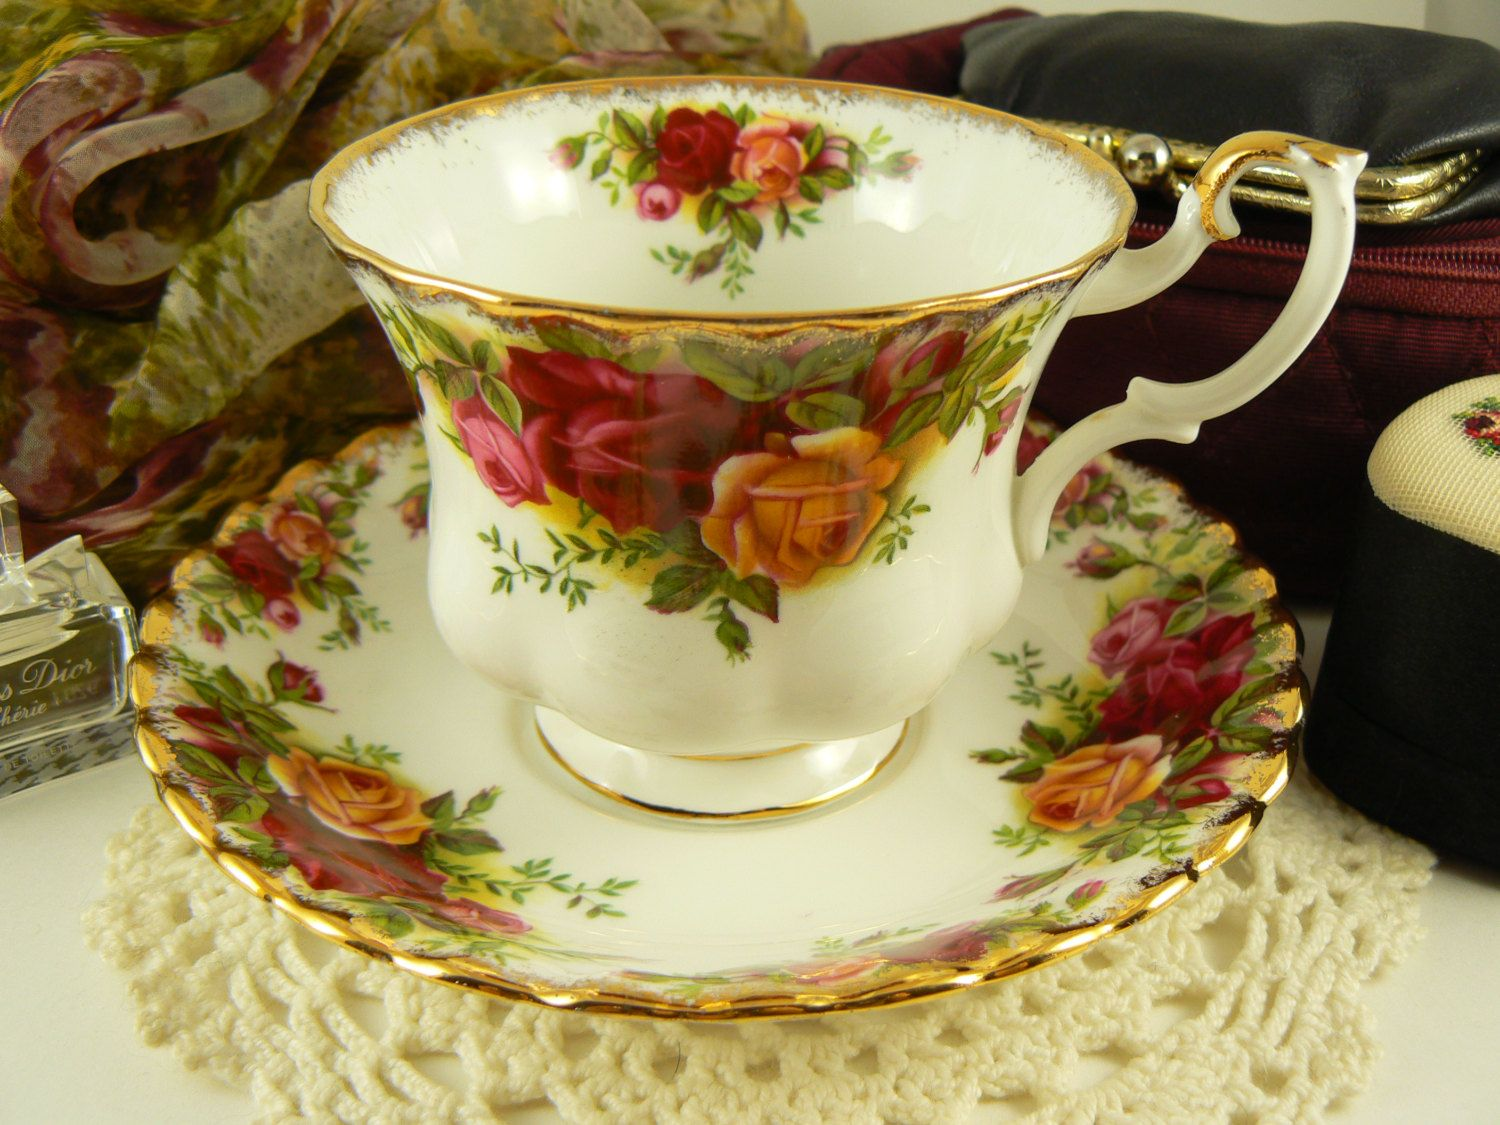 Vintage Royal Albert Old Country Roses Teacup and Saucer Bone China England by BlueTortoiseVintage for $34.95 Cdn on Etsy